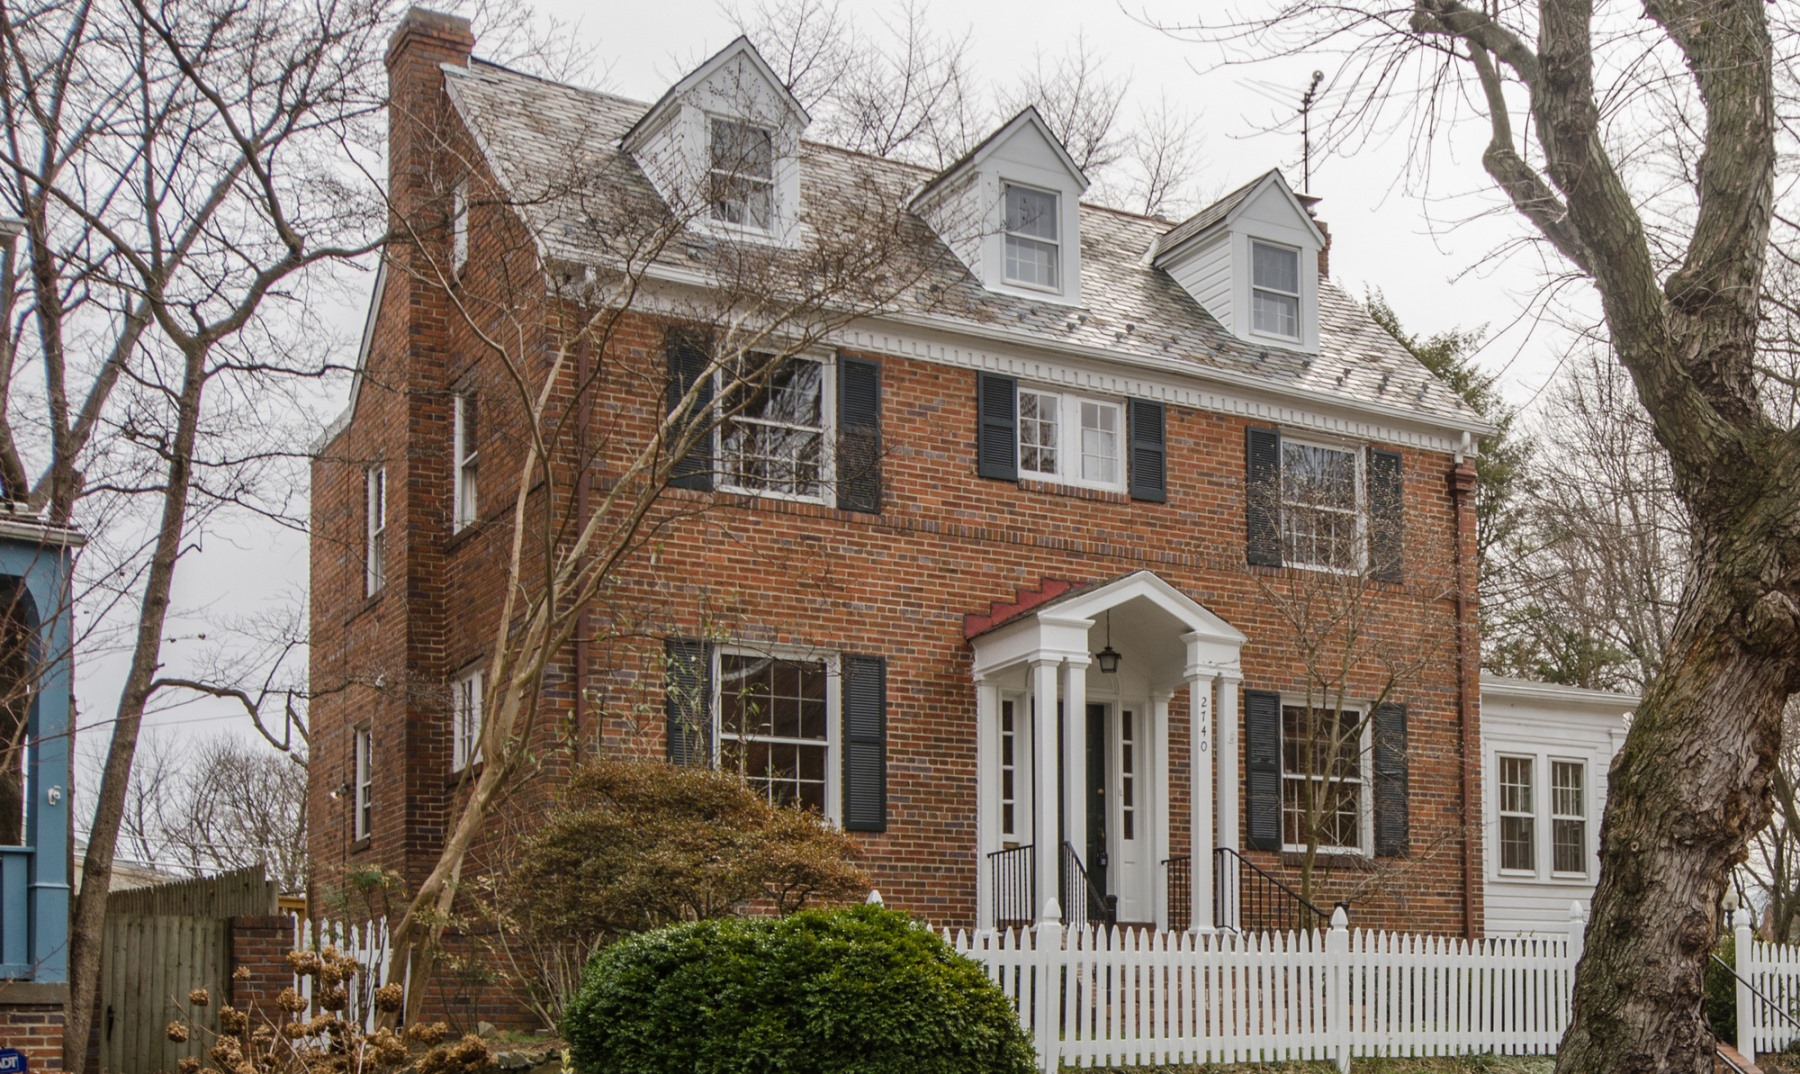 Single Family Home for Sale at 2740 Cortland Place Nw, Washington Woodley Park, Washington, District Of Columbia, 20008 United States